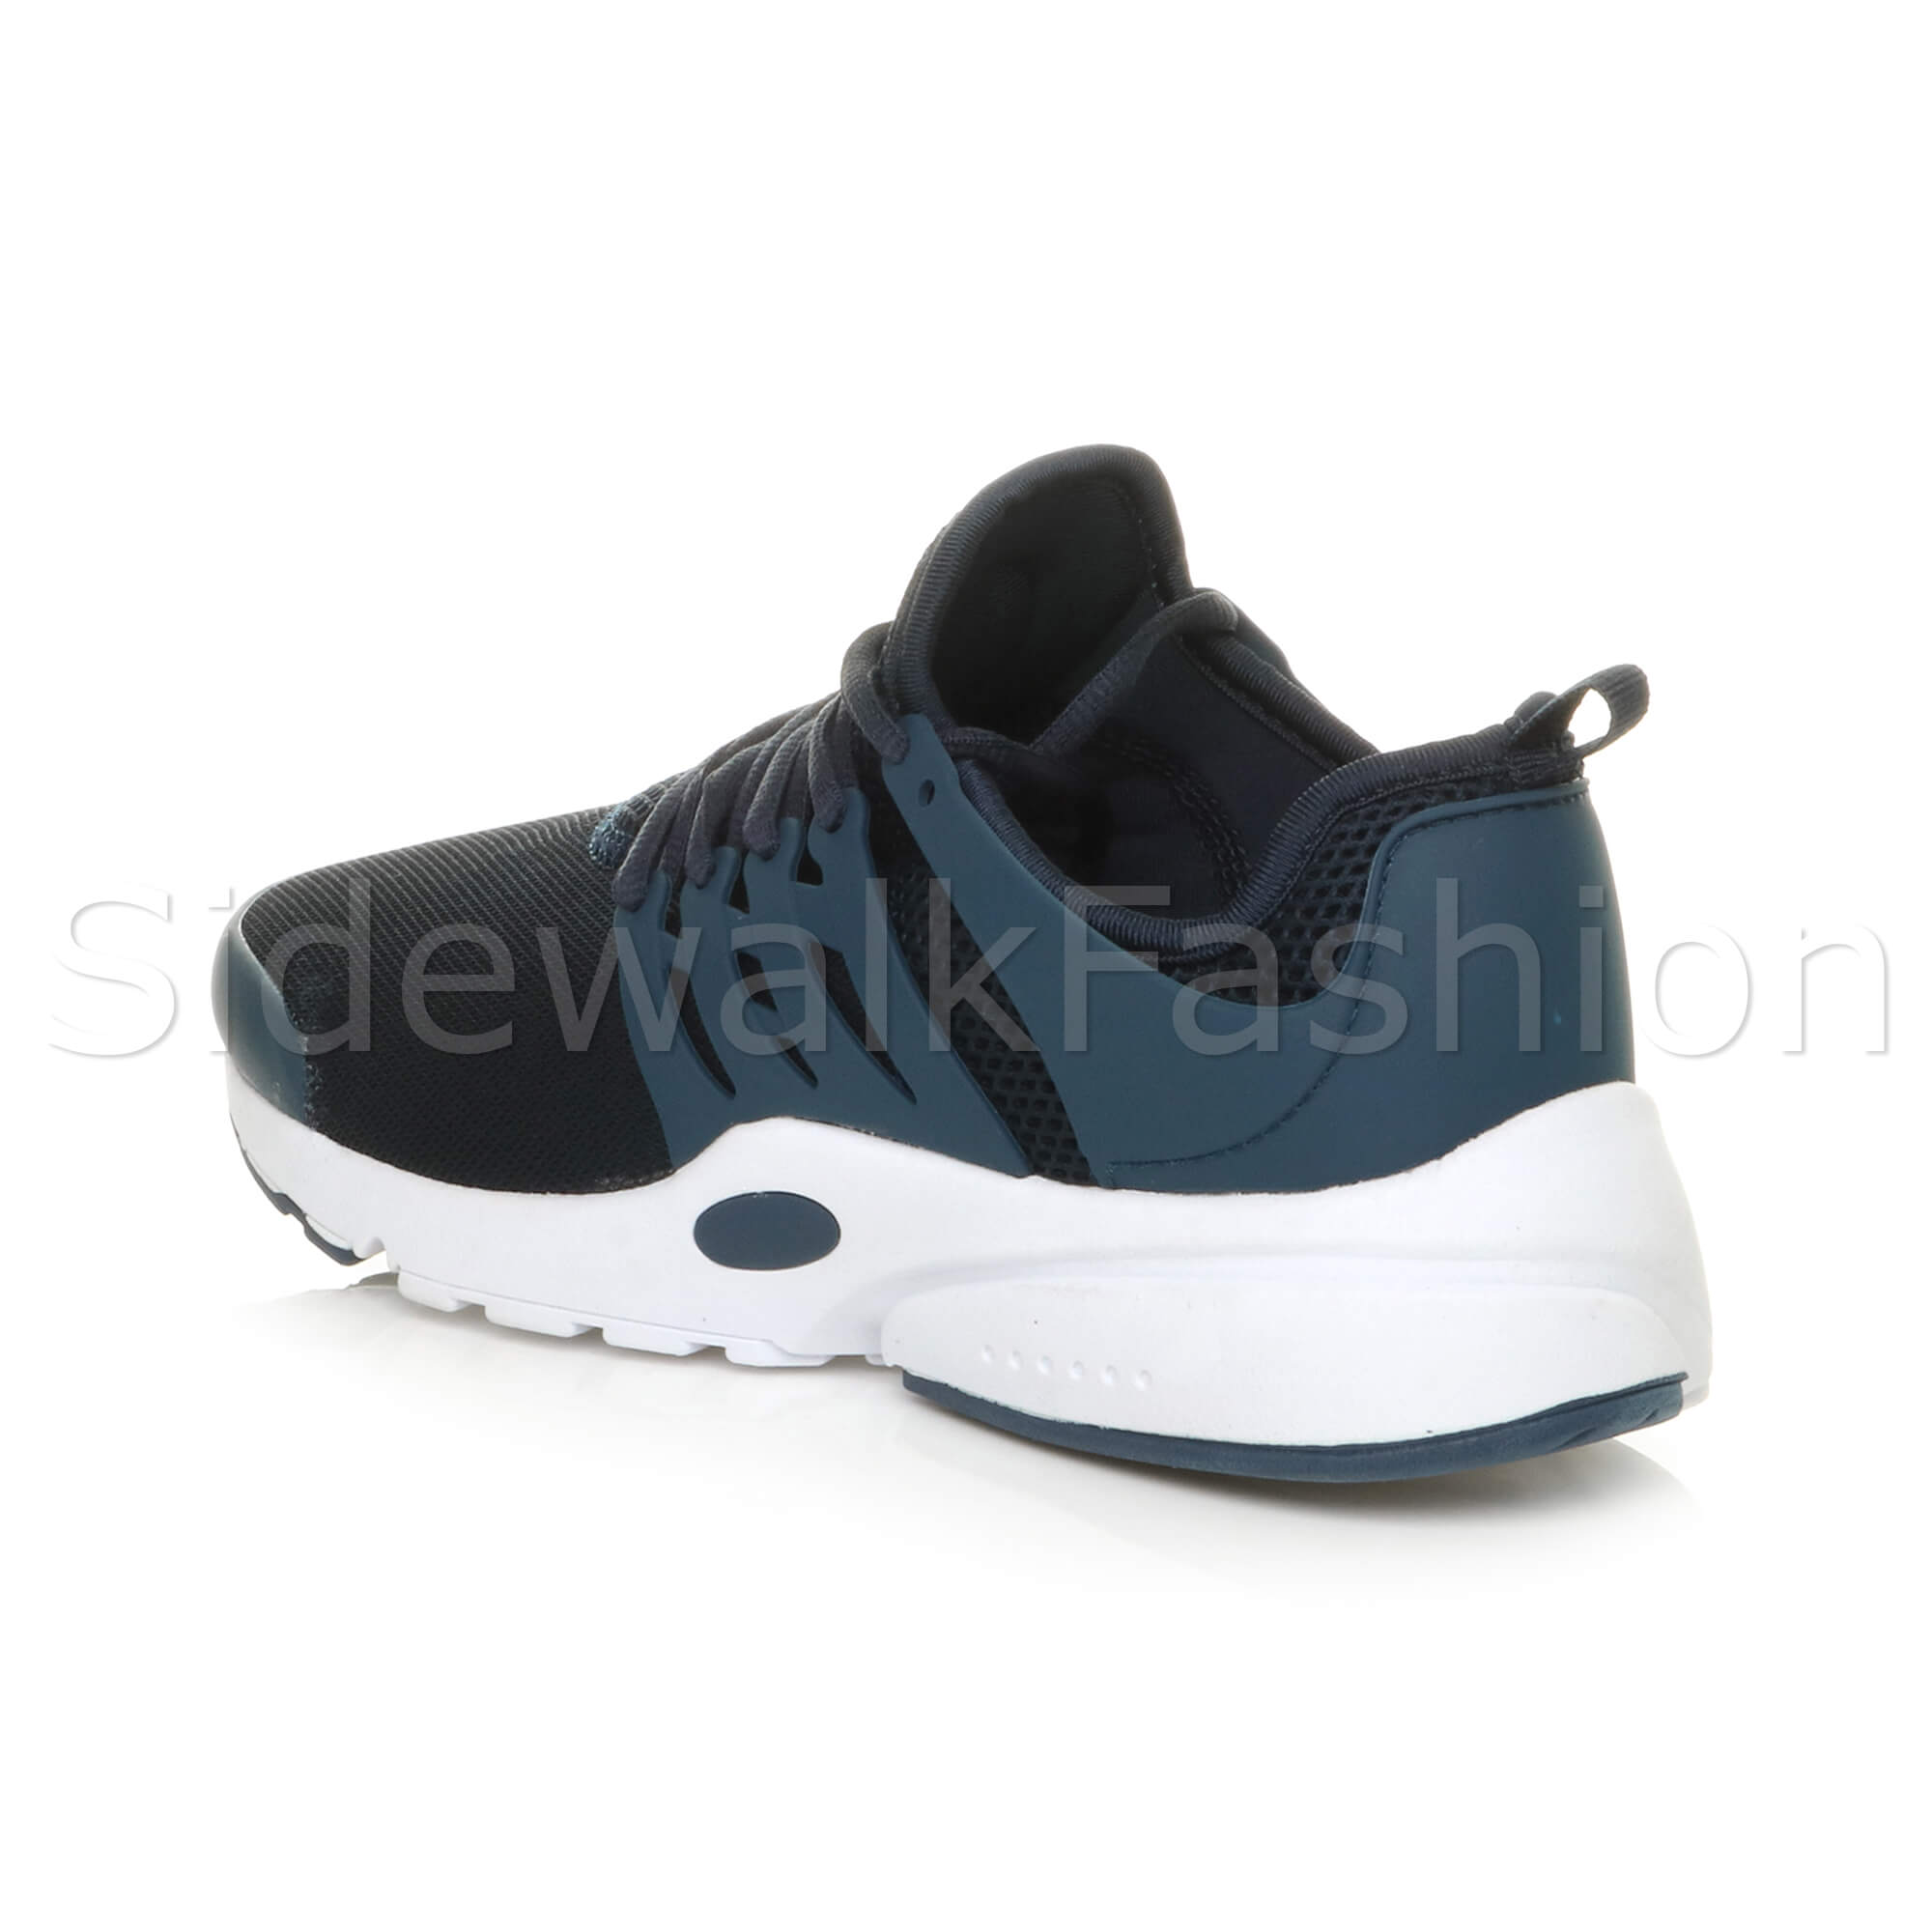 Mens-lace-up-sports-casual-low-top-gym-running-flexible-sneakers-trainers-size miniatuur 21